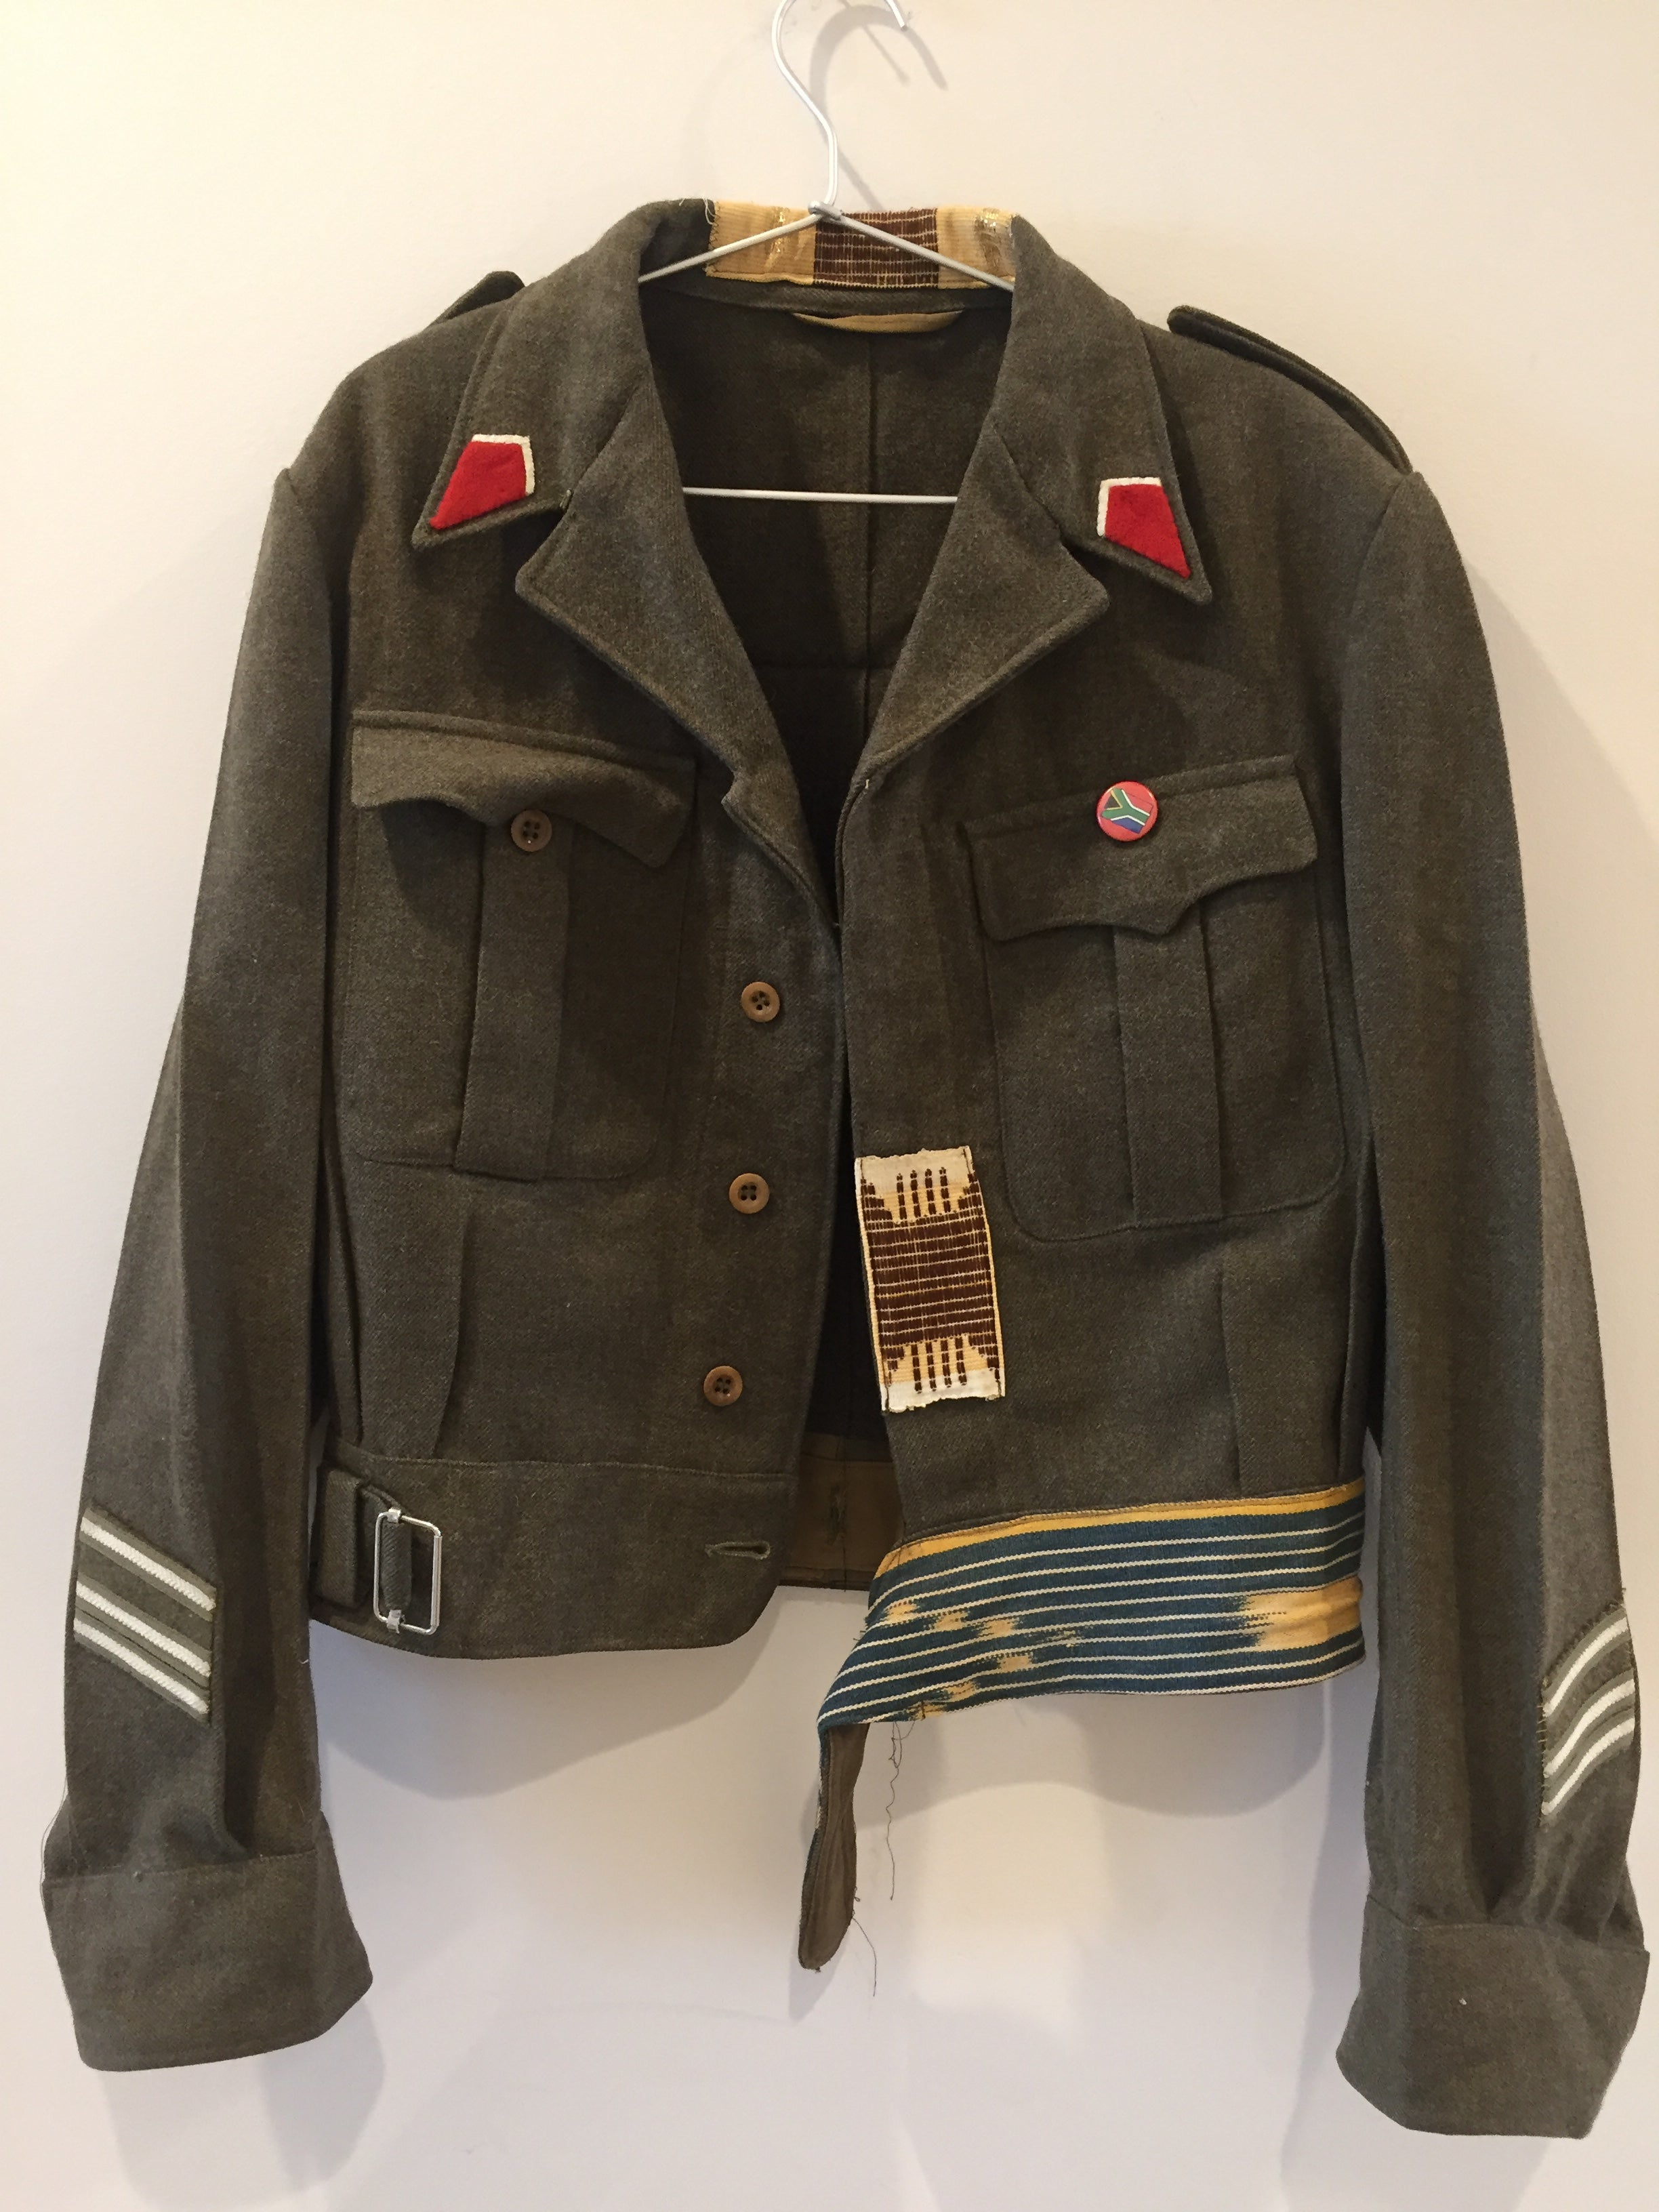 Vintage Original South Africa Army Green Heavy Wool w/ patches Jacket Unisex M